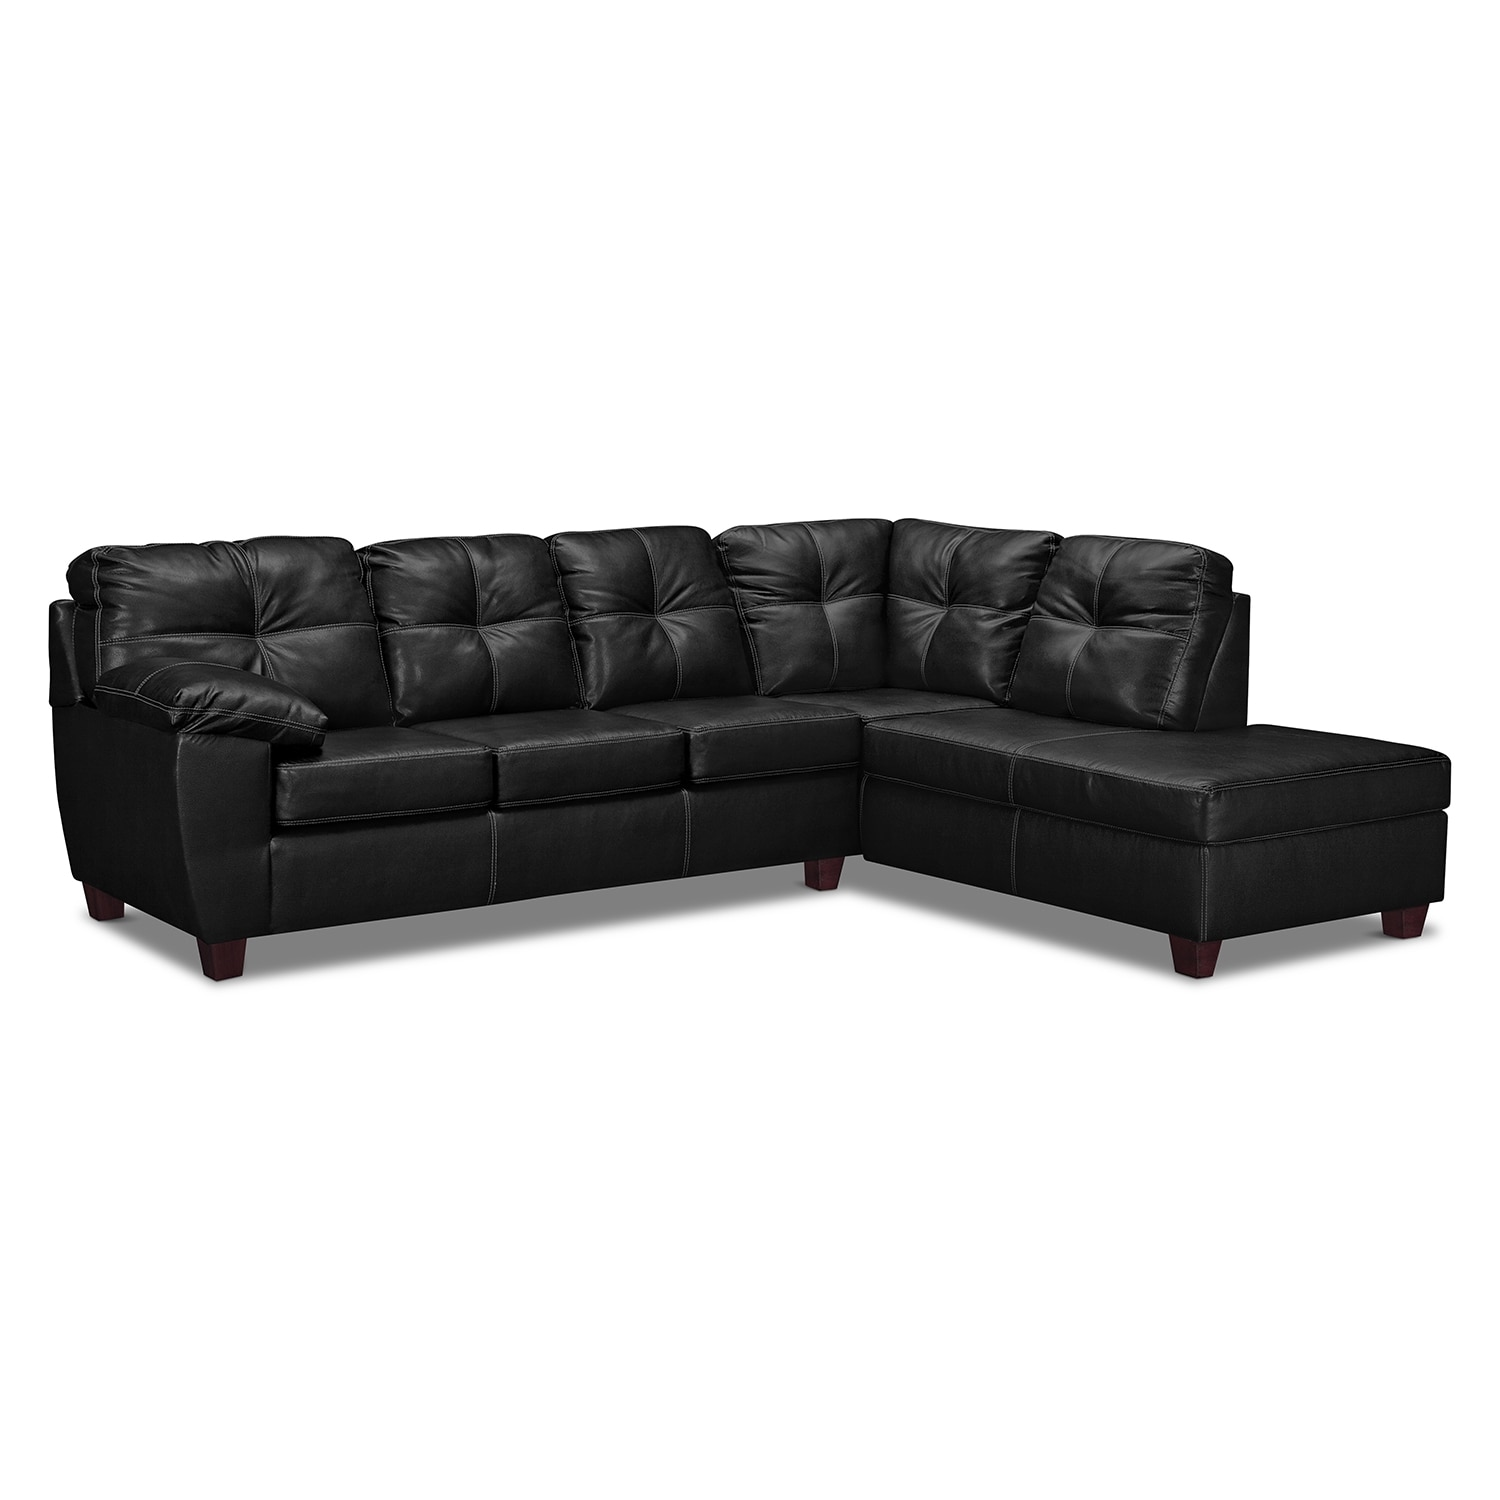 Rialto 2-Piece Sectional with Right-Facing Chaise - Onyx